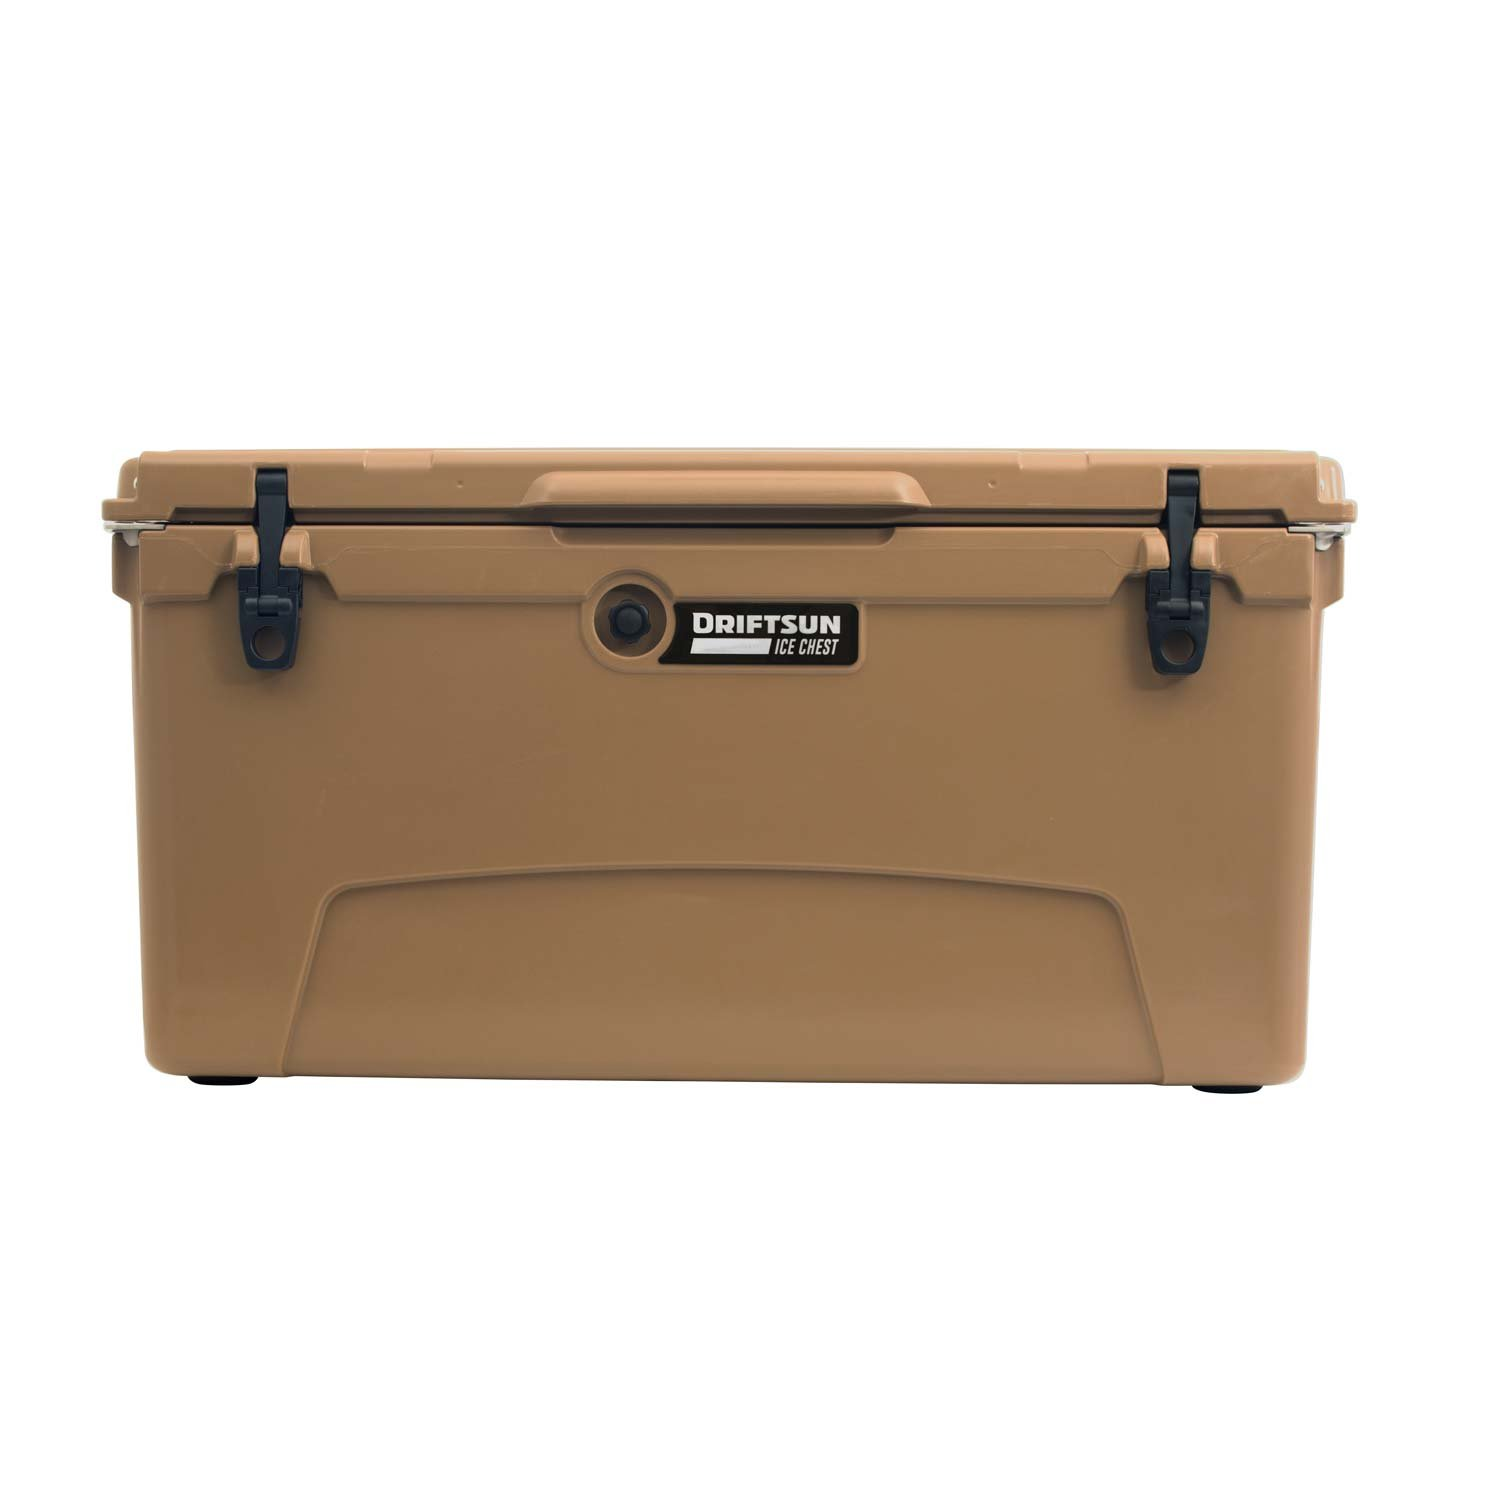 Driftsun 110-quart Ice  Insulated Cooler